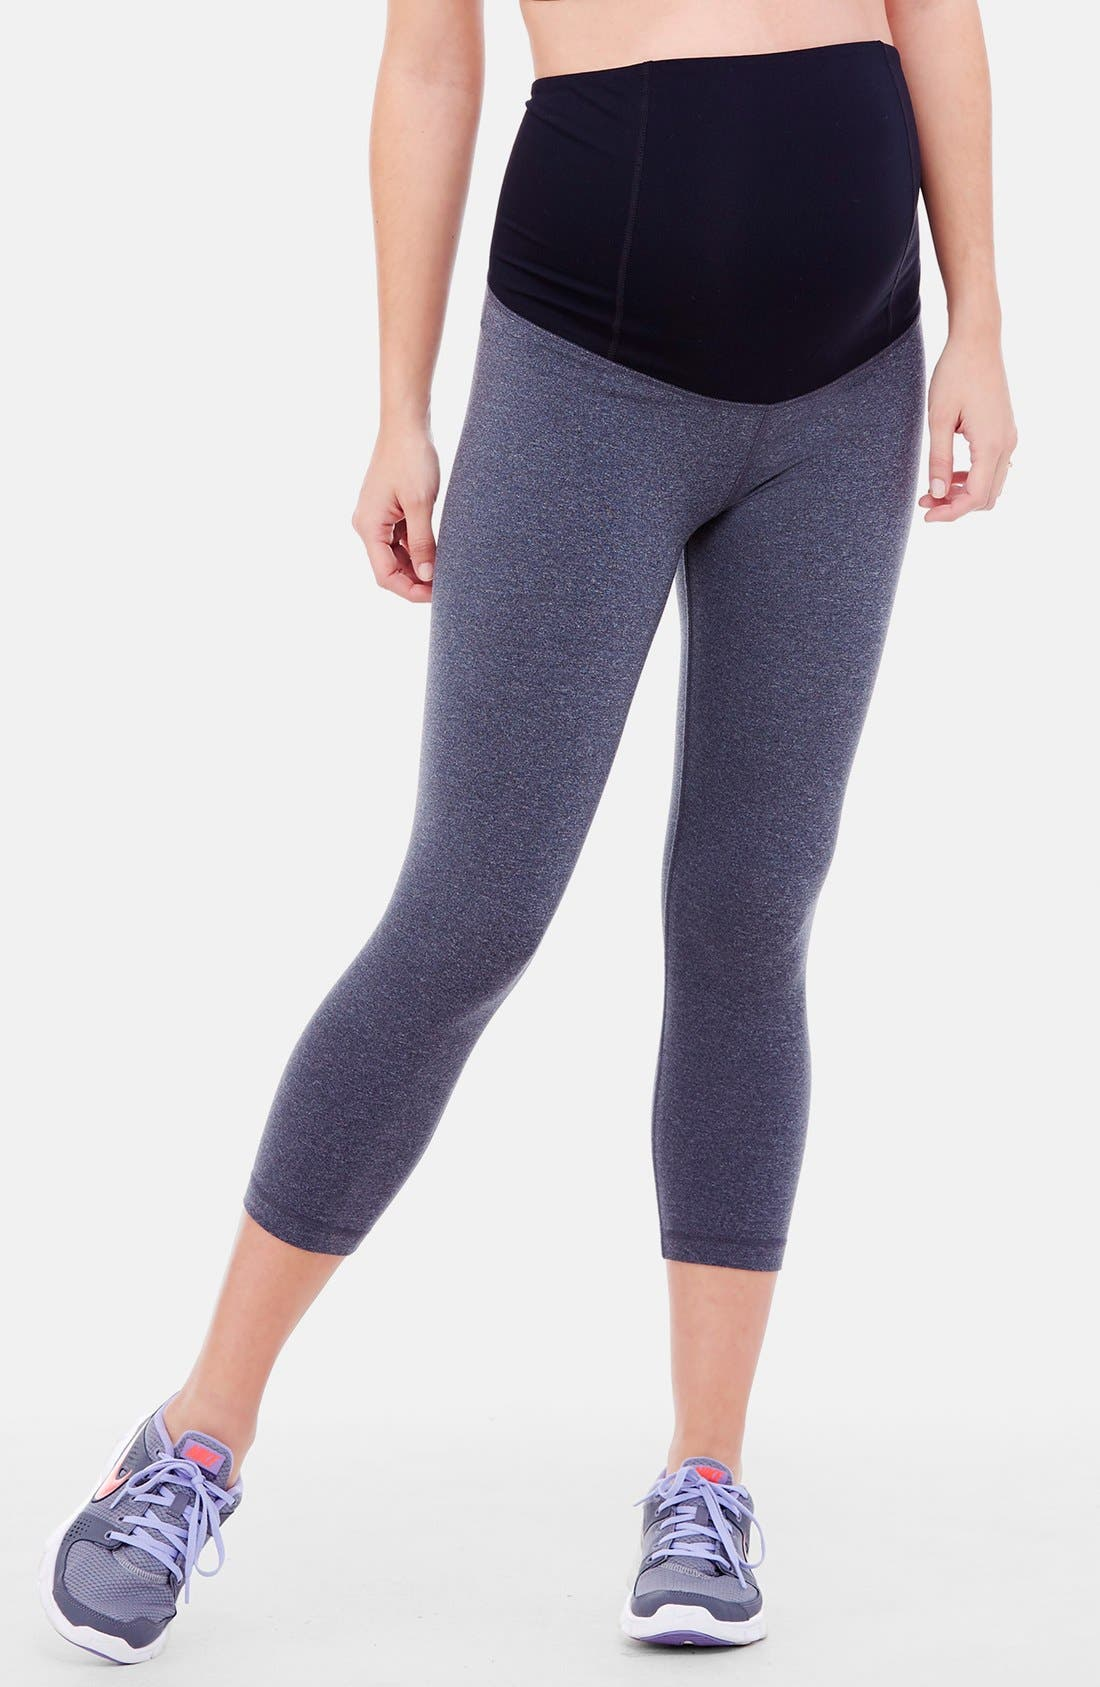 Active Maternity Capri Pants with Crossover Panel,                         Main,                         color, Dark Heather Grey